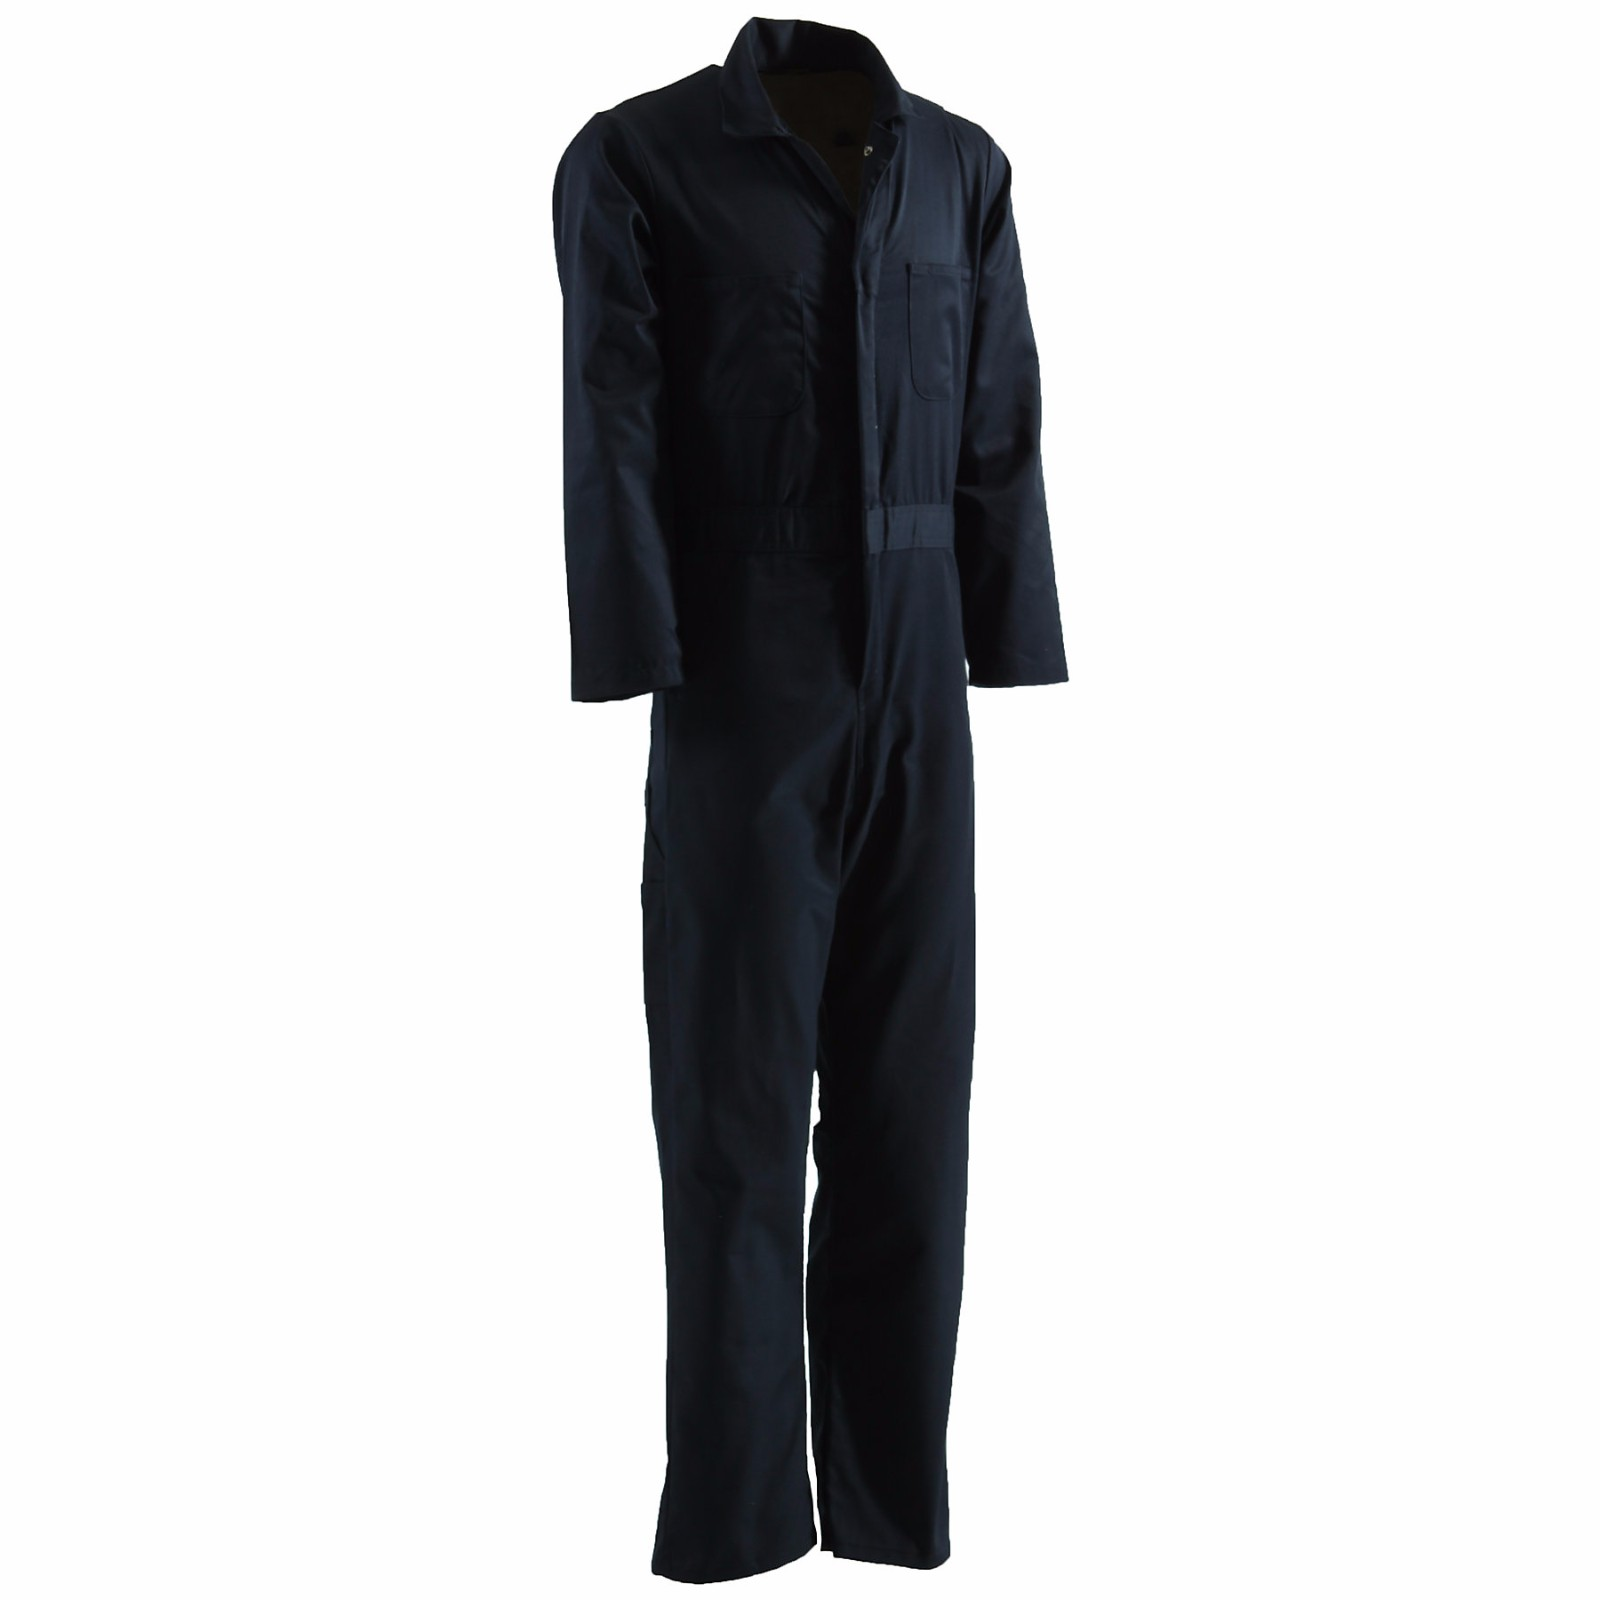 Berne Standard Unlined Coverall Size 2XLR 54R Regular (Navy) by Coveralls